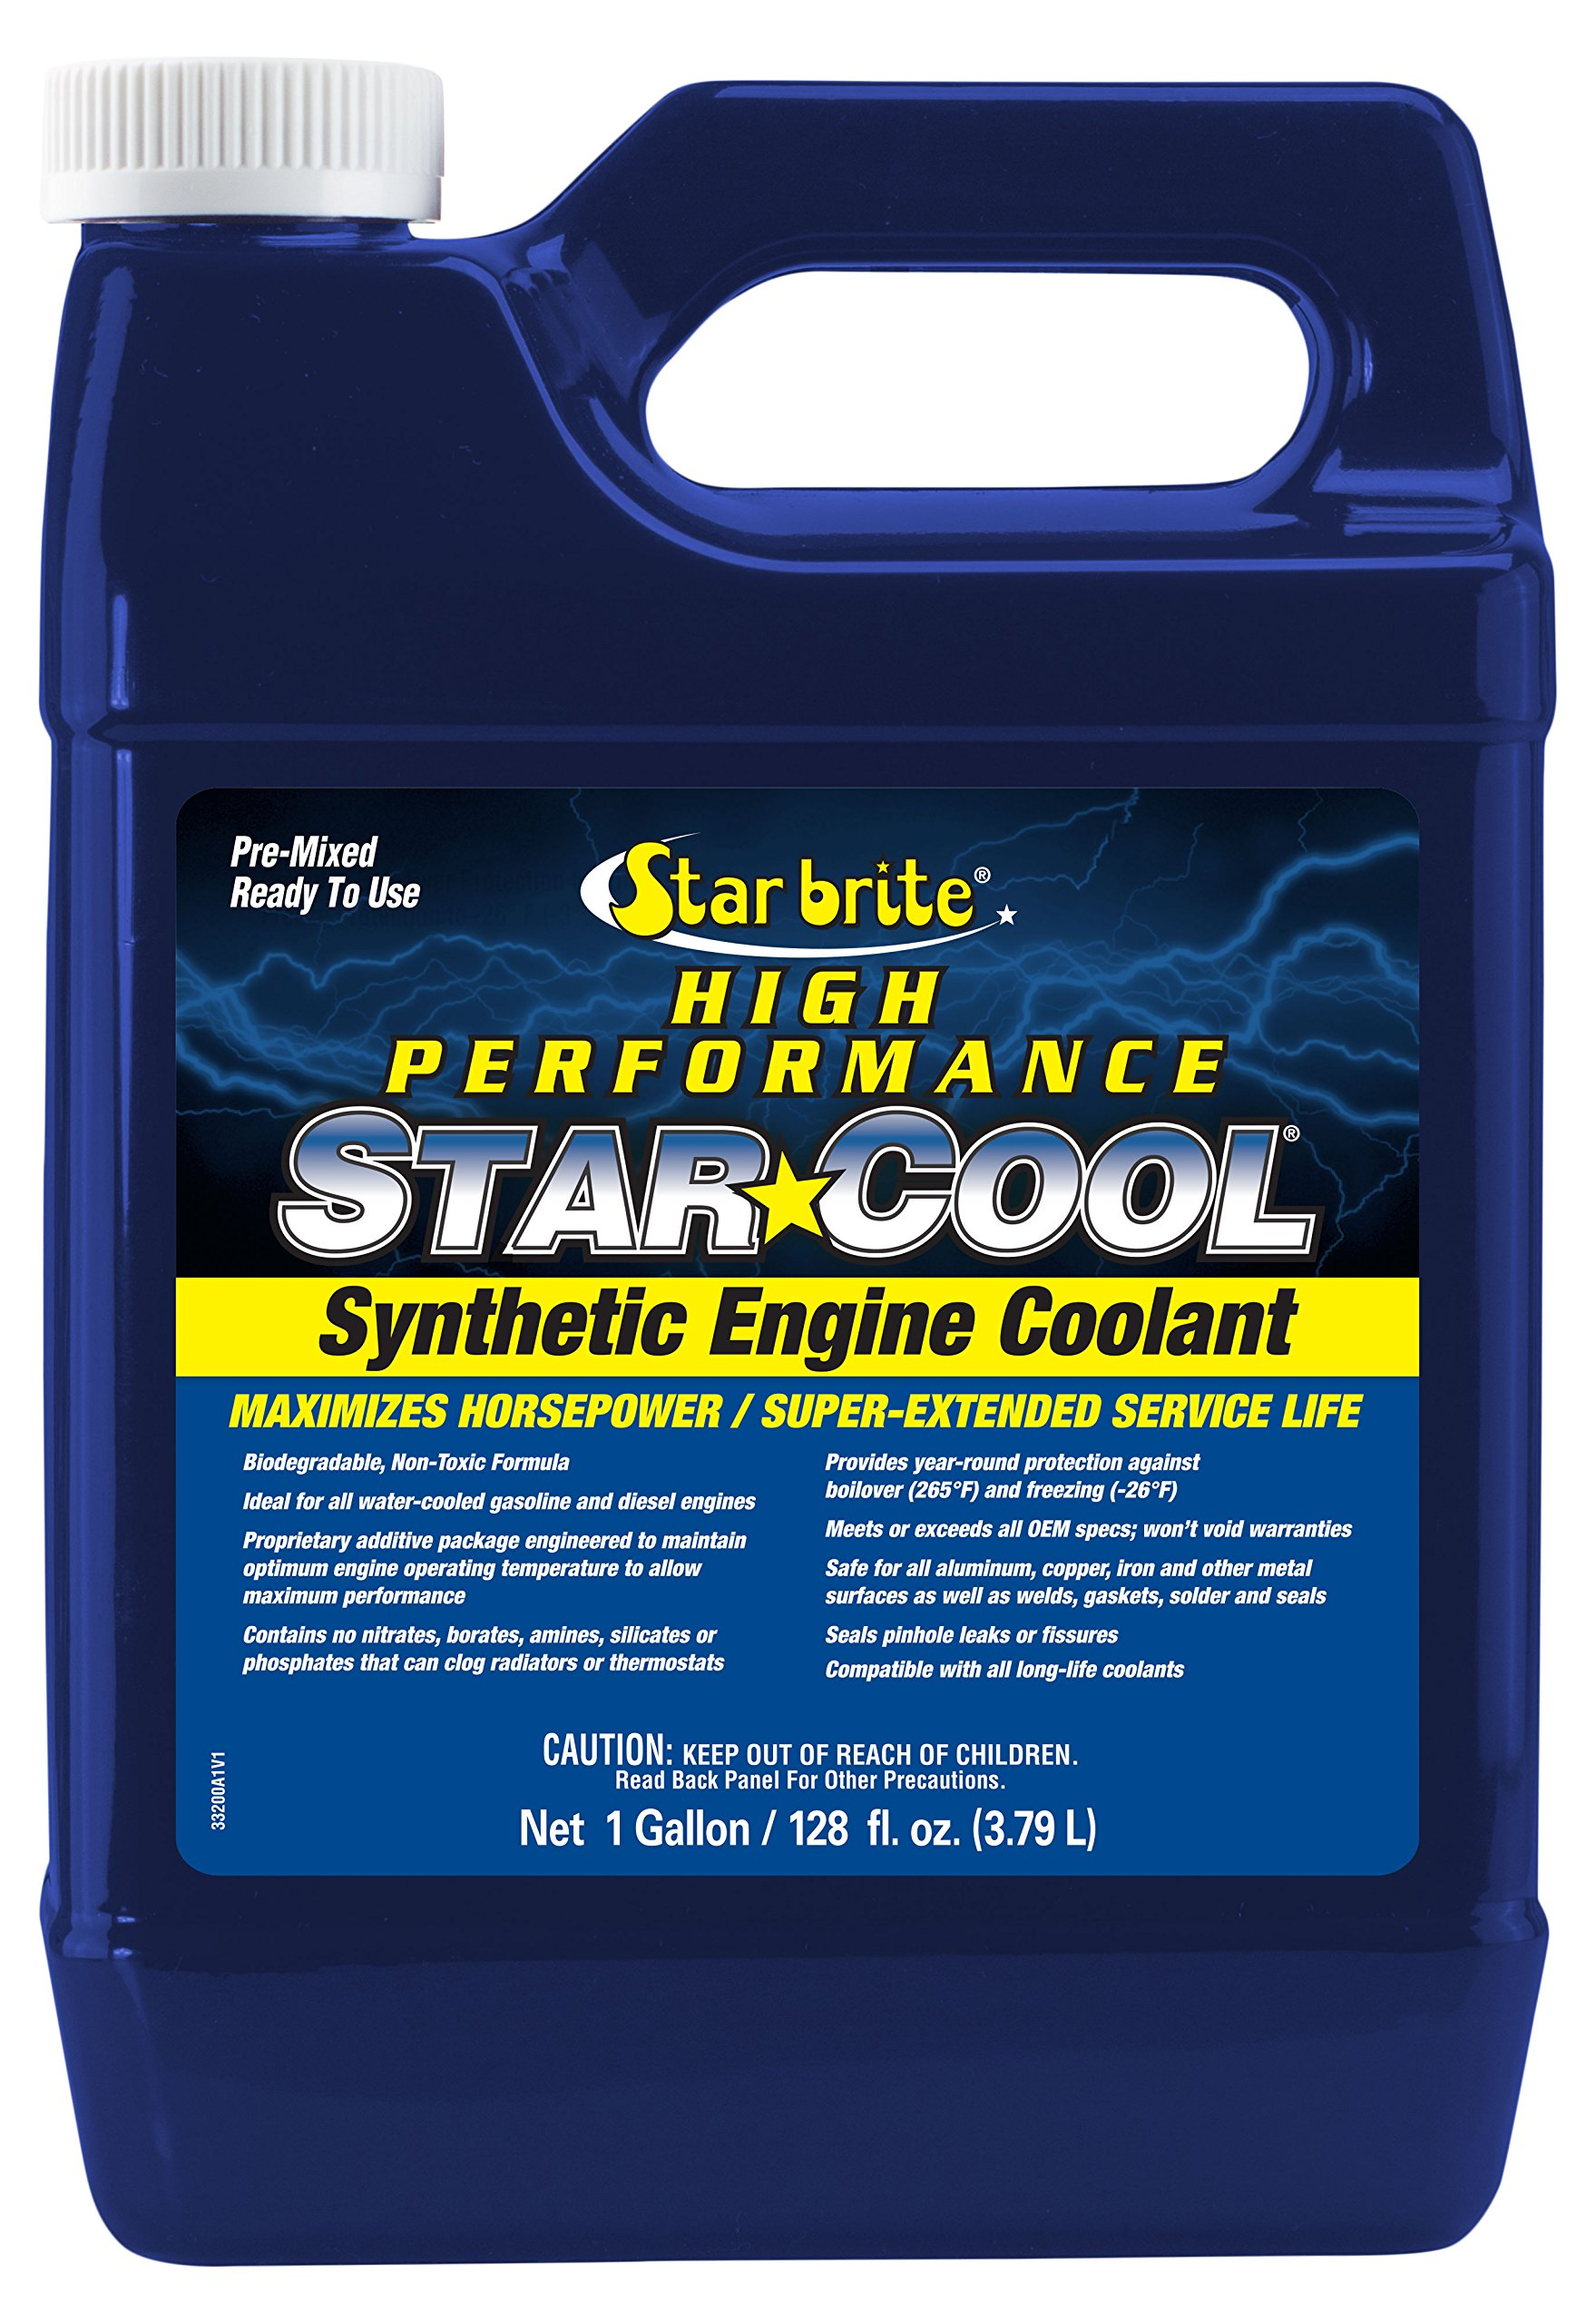 Star brite Star-Cool Premium Synthetic PG Engine Coolant - 1 gallon by Star Brite